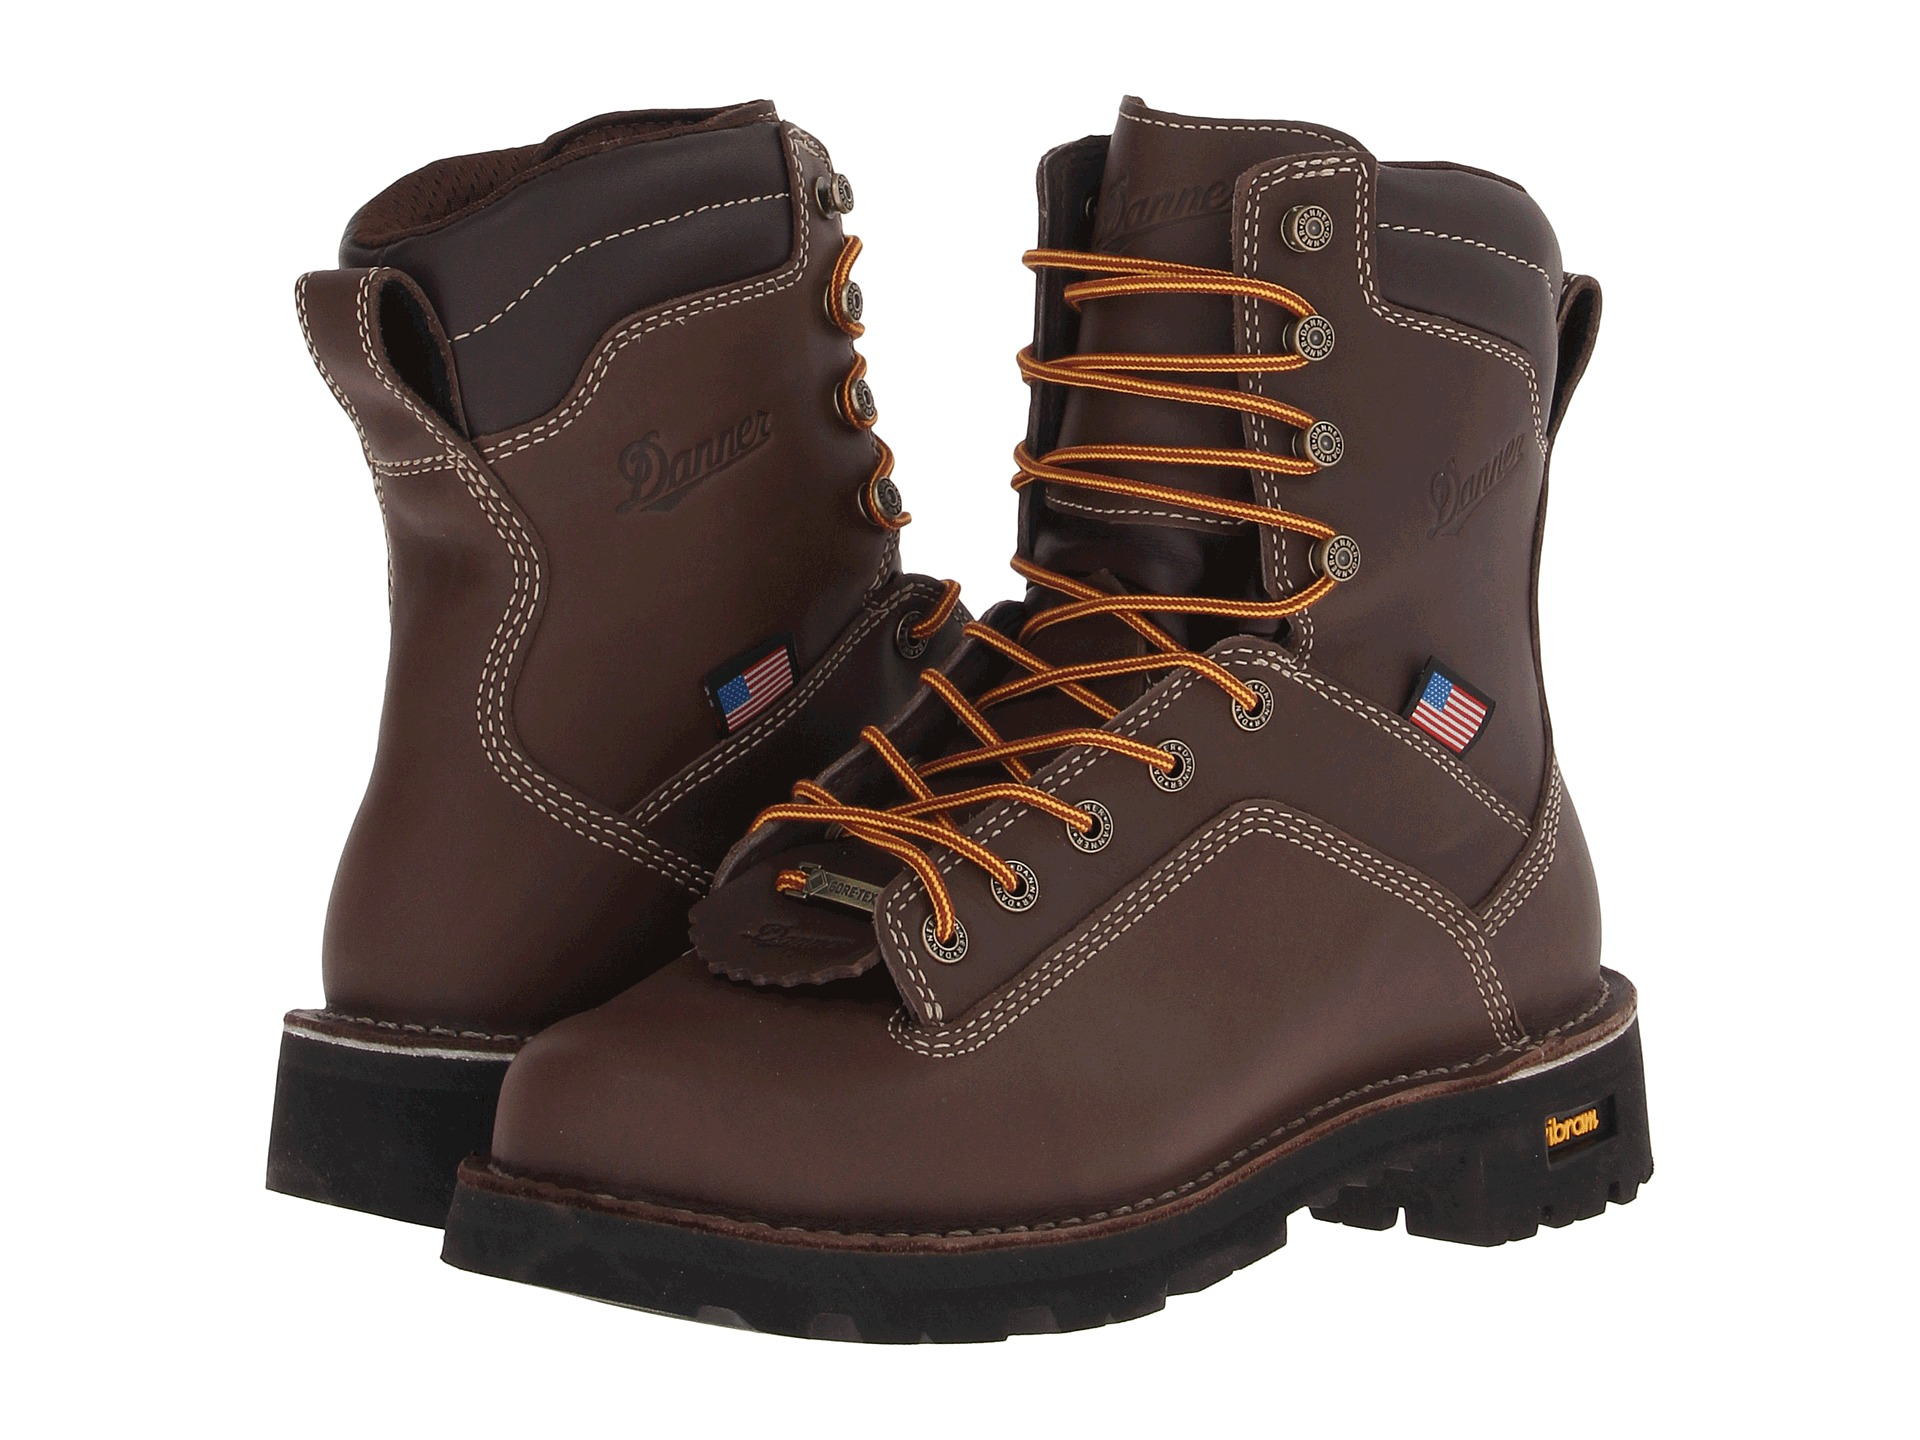 Danner Lace To Toe Boots Coltford Boots